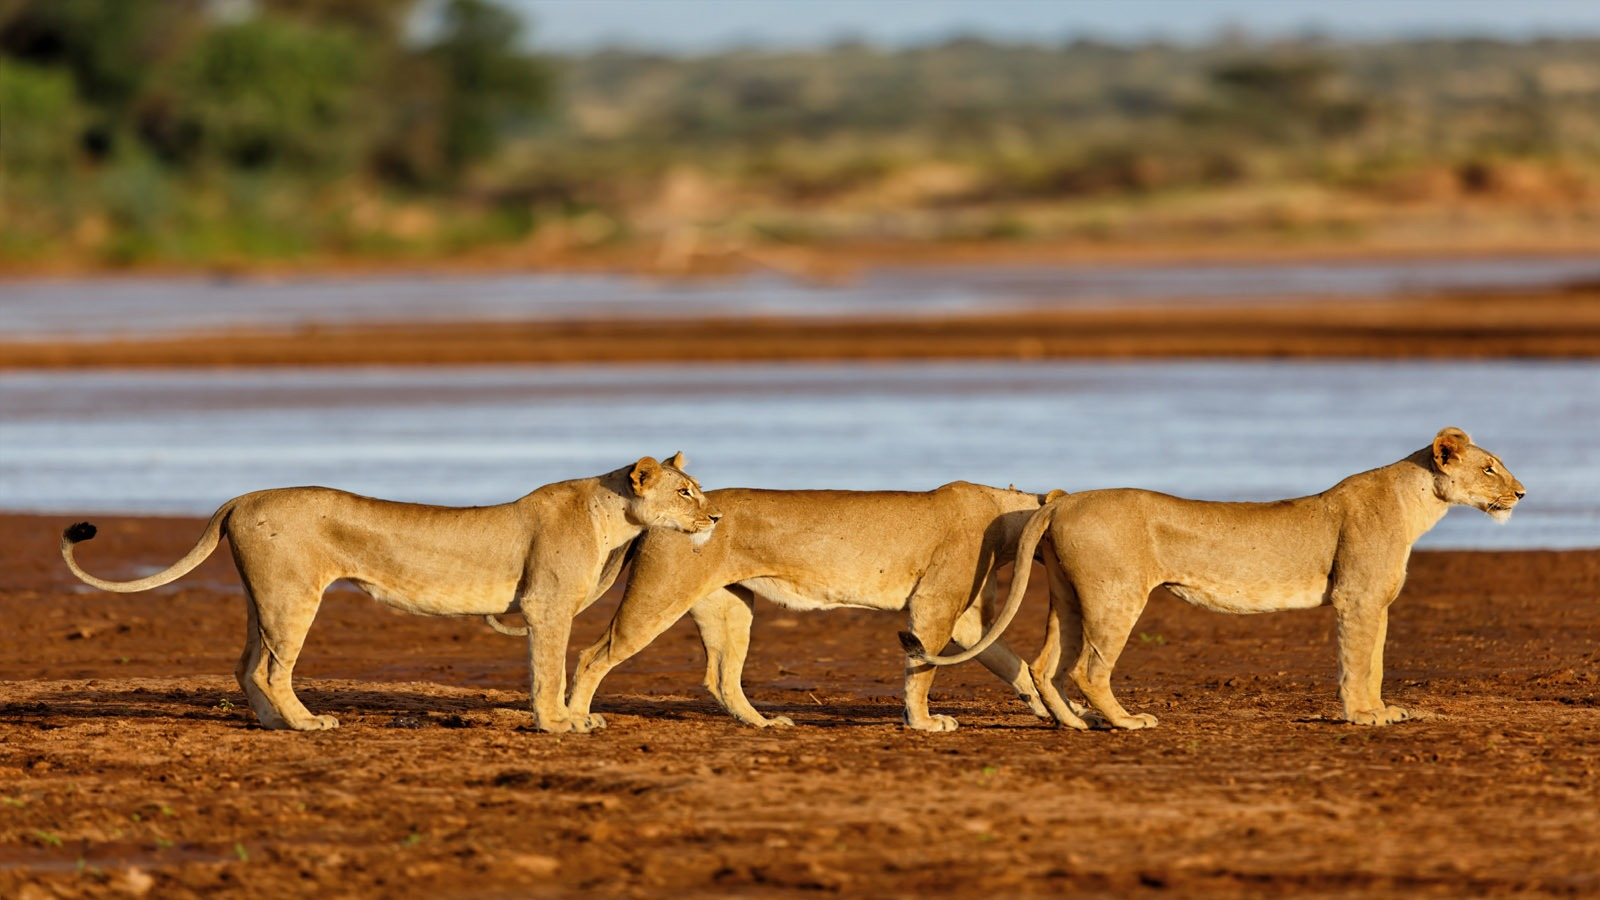 Lions on hunt near water lakes